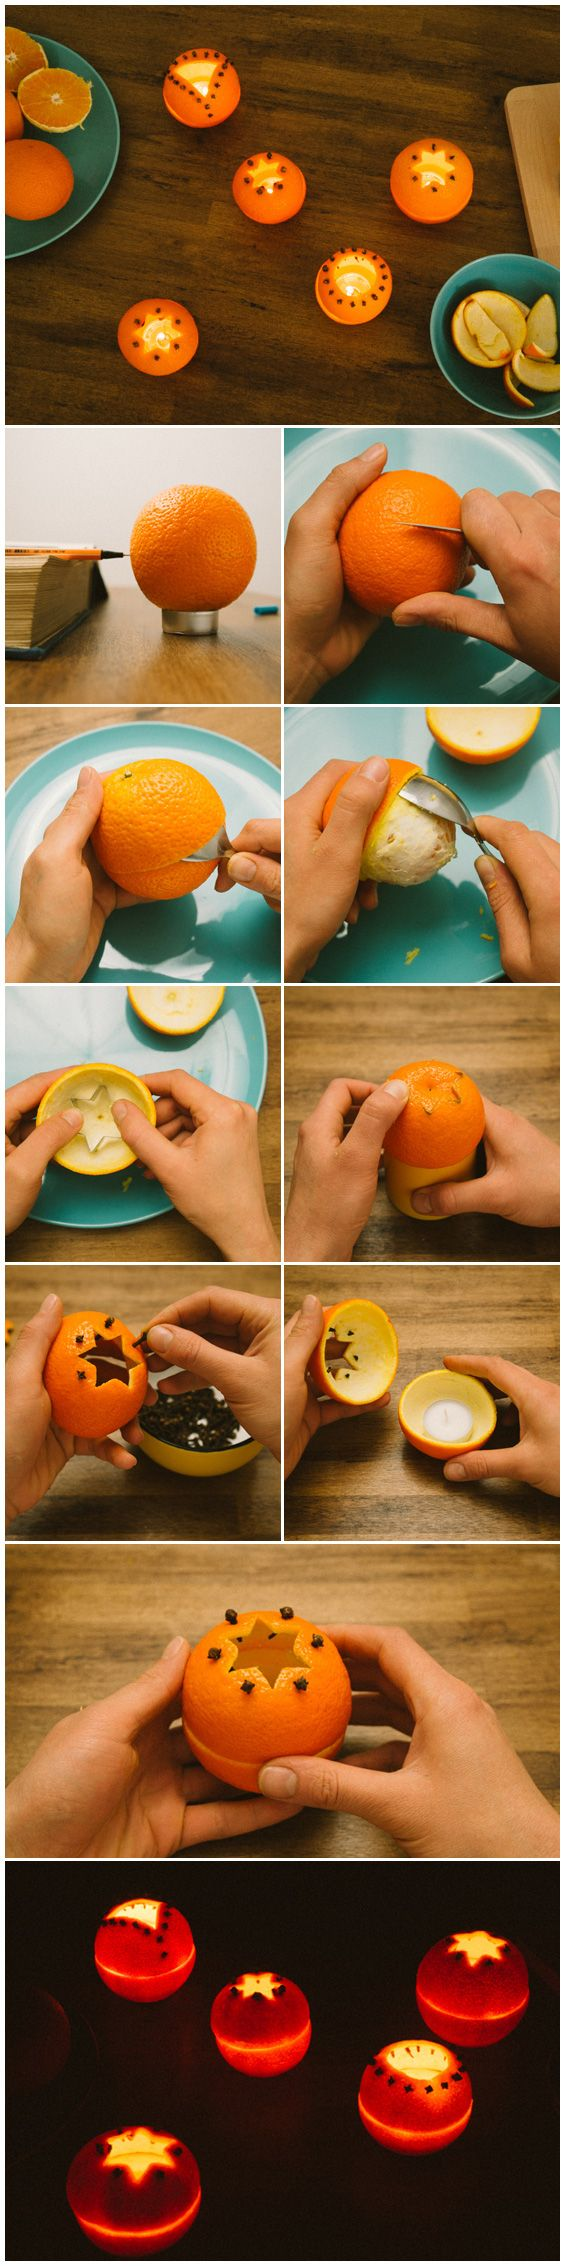 community post of the day: orange-clove candle holders